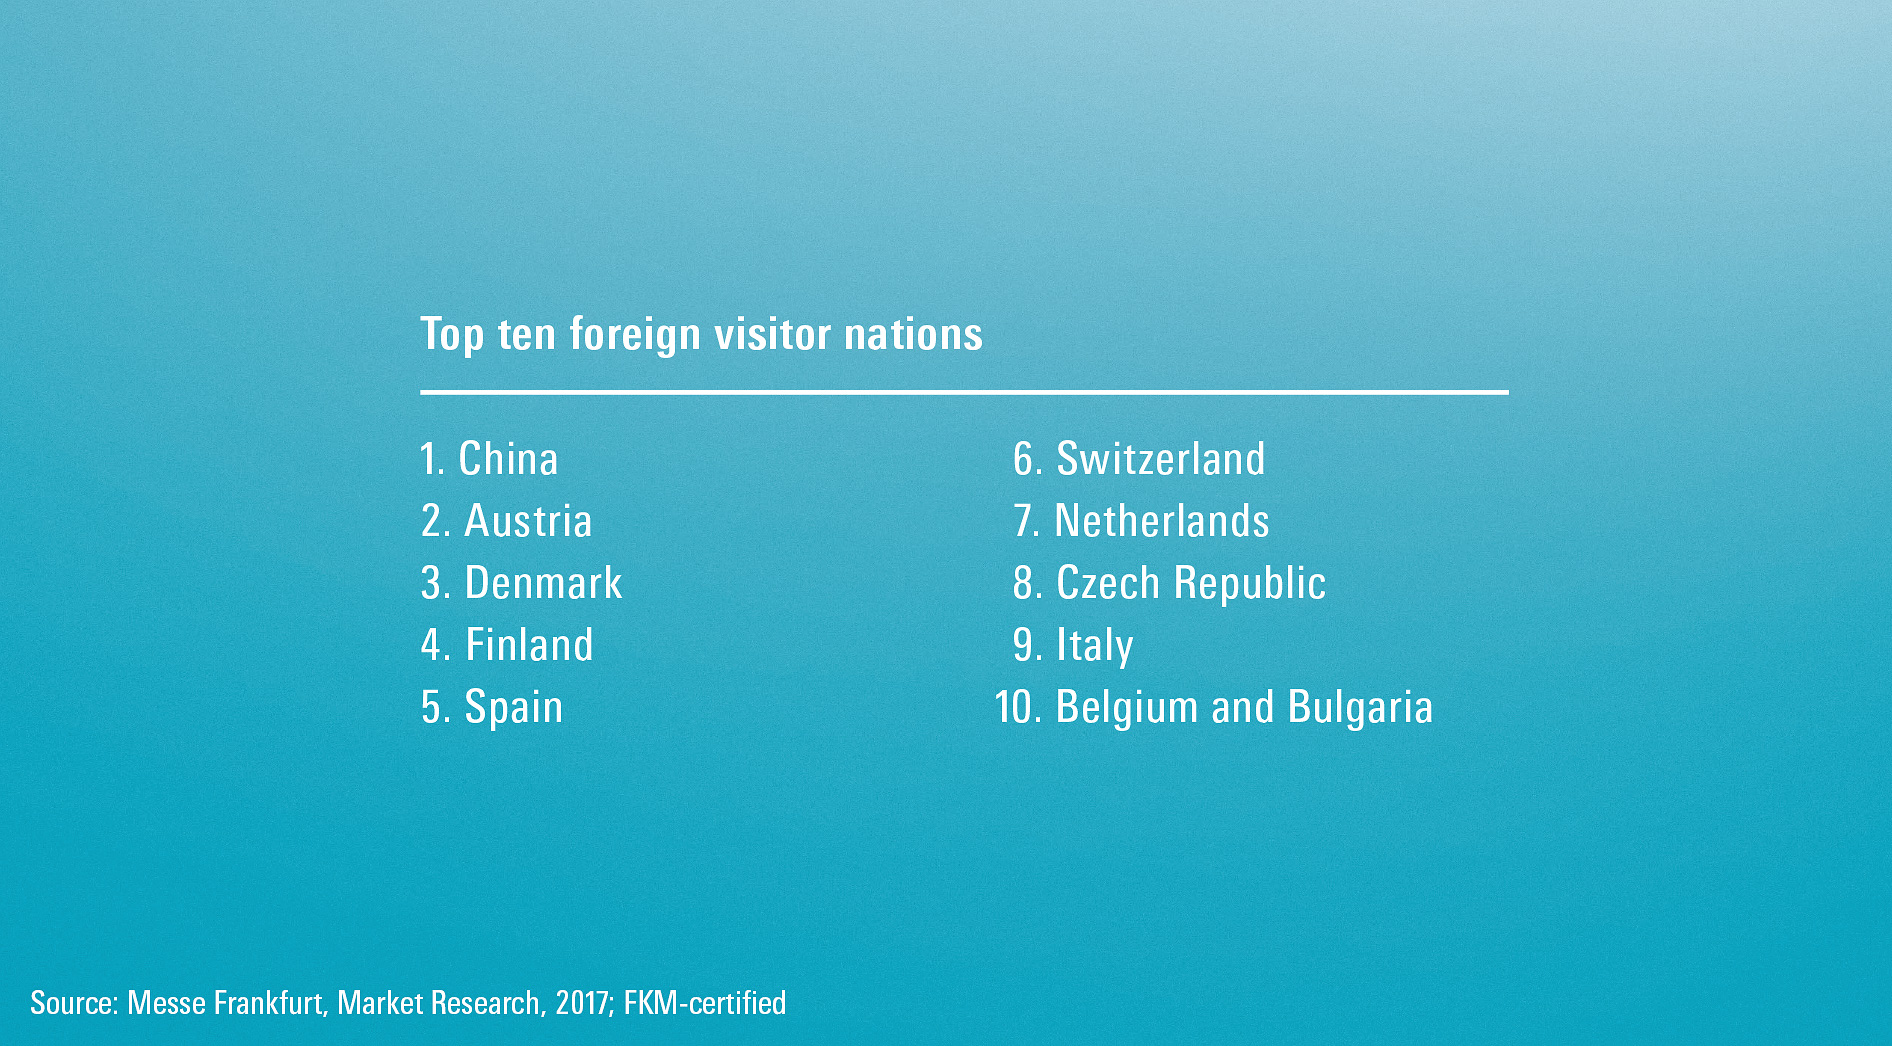 Top ten foreign visitor nations